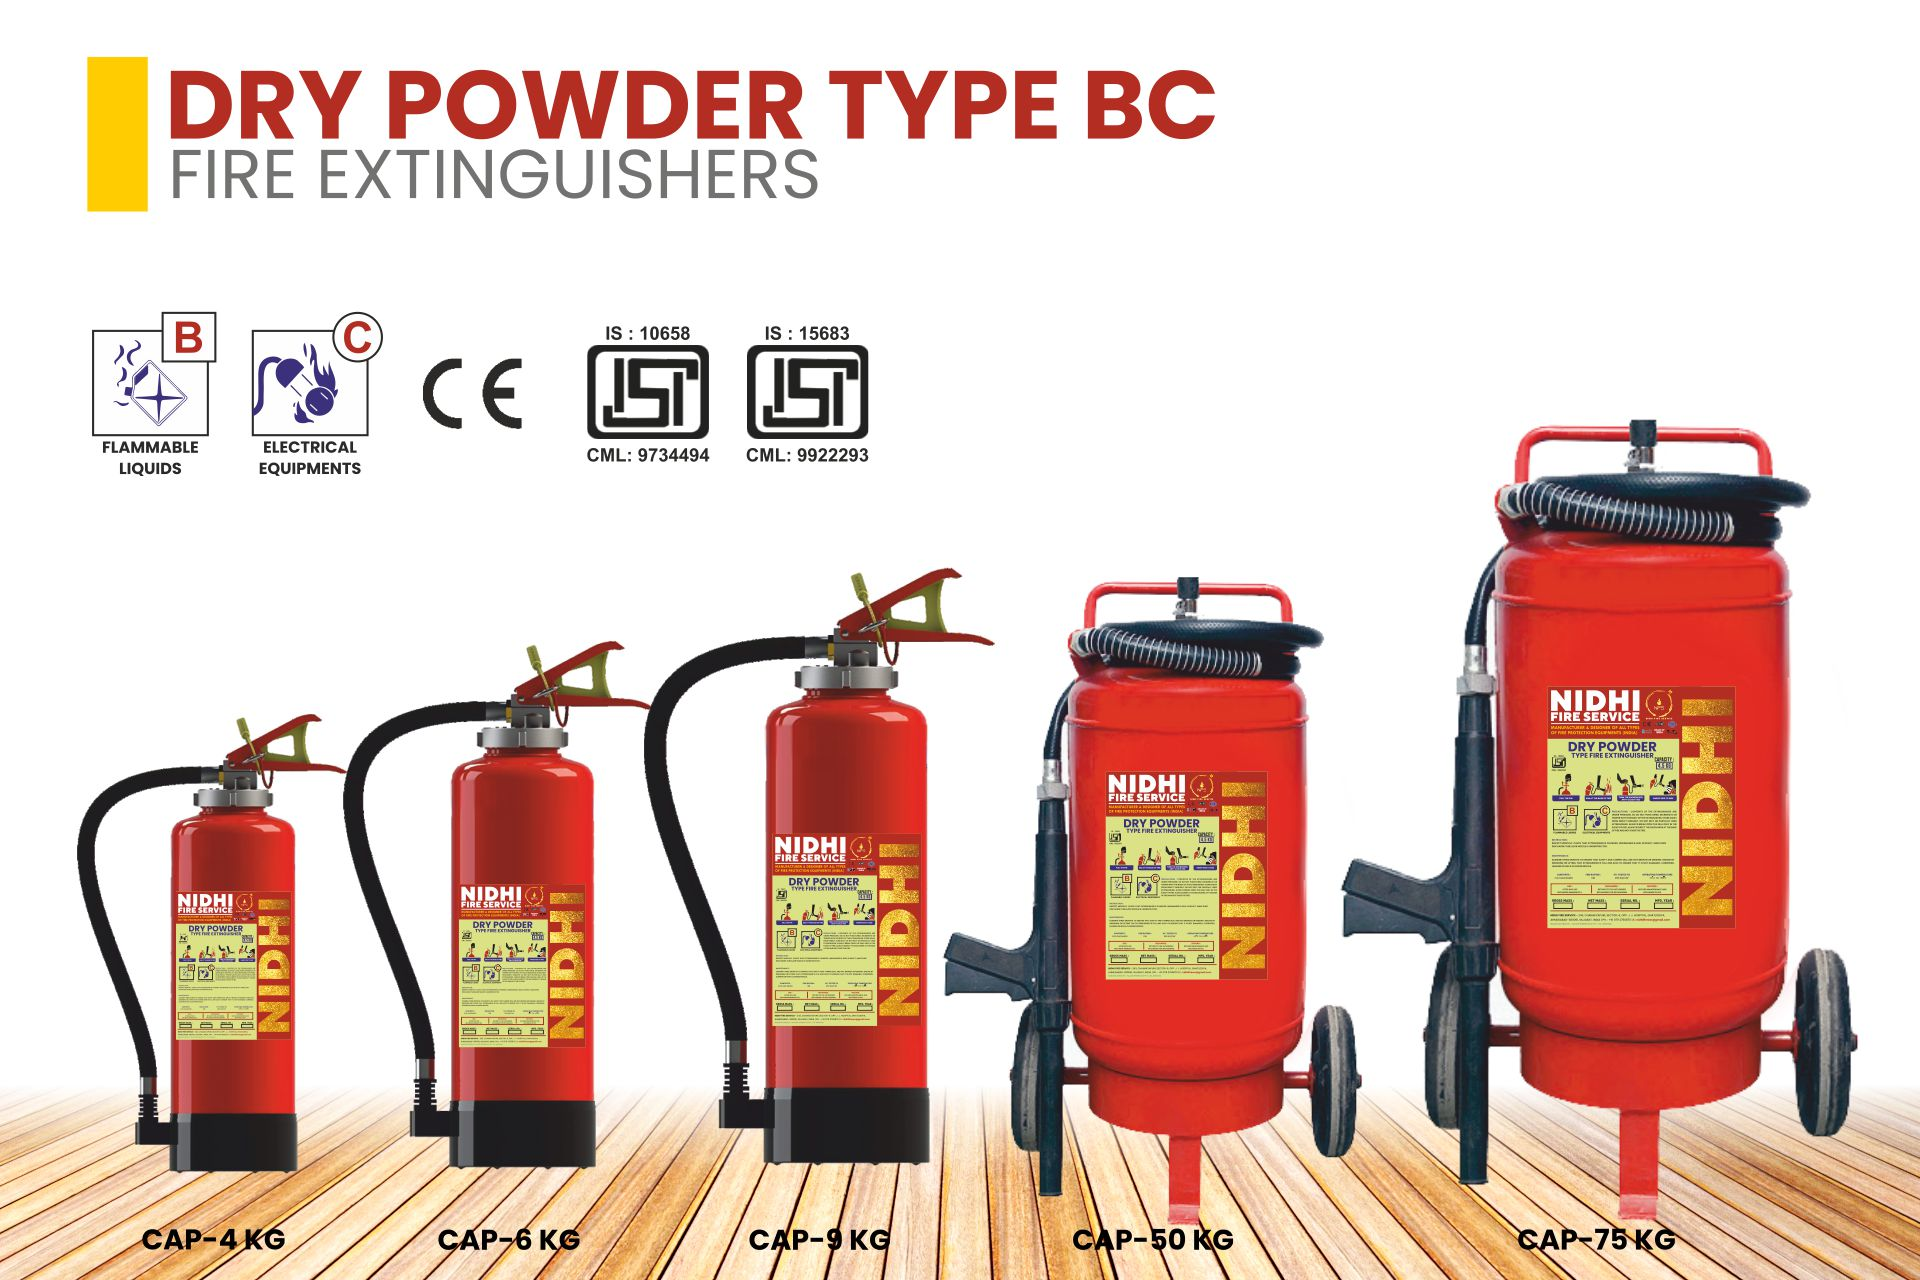 FIRE EXTINGUISHERS Product 3